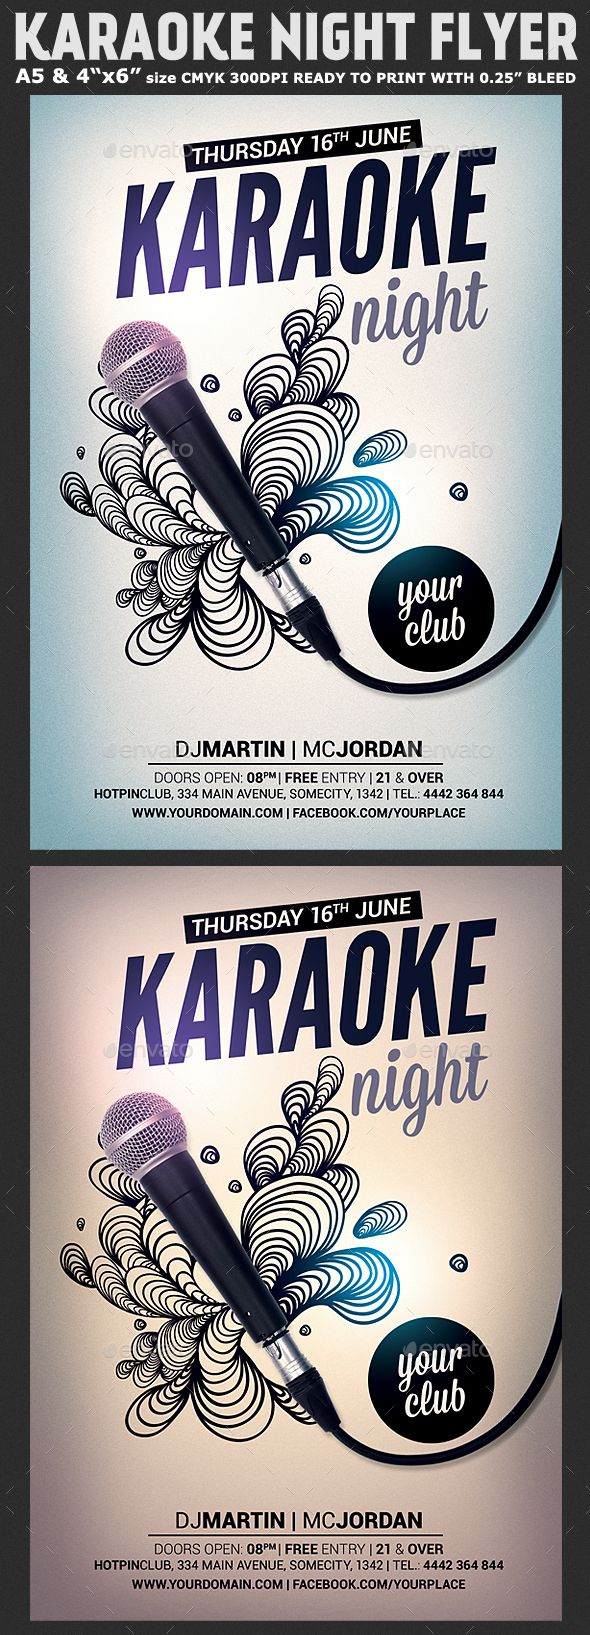 Karaoke Night Flyer Template  Flyer Template Karaoke And Party Flyer